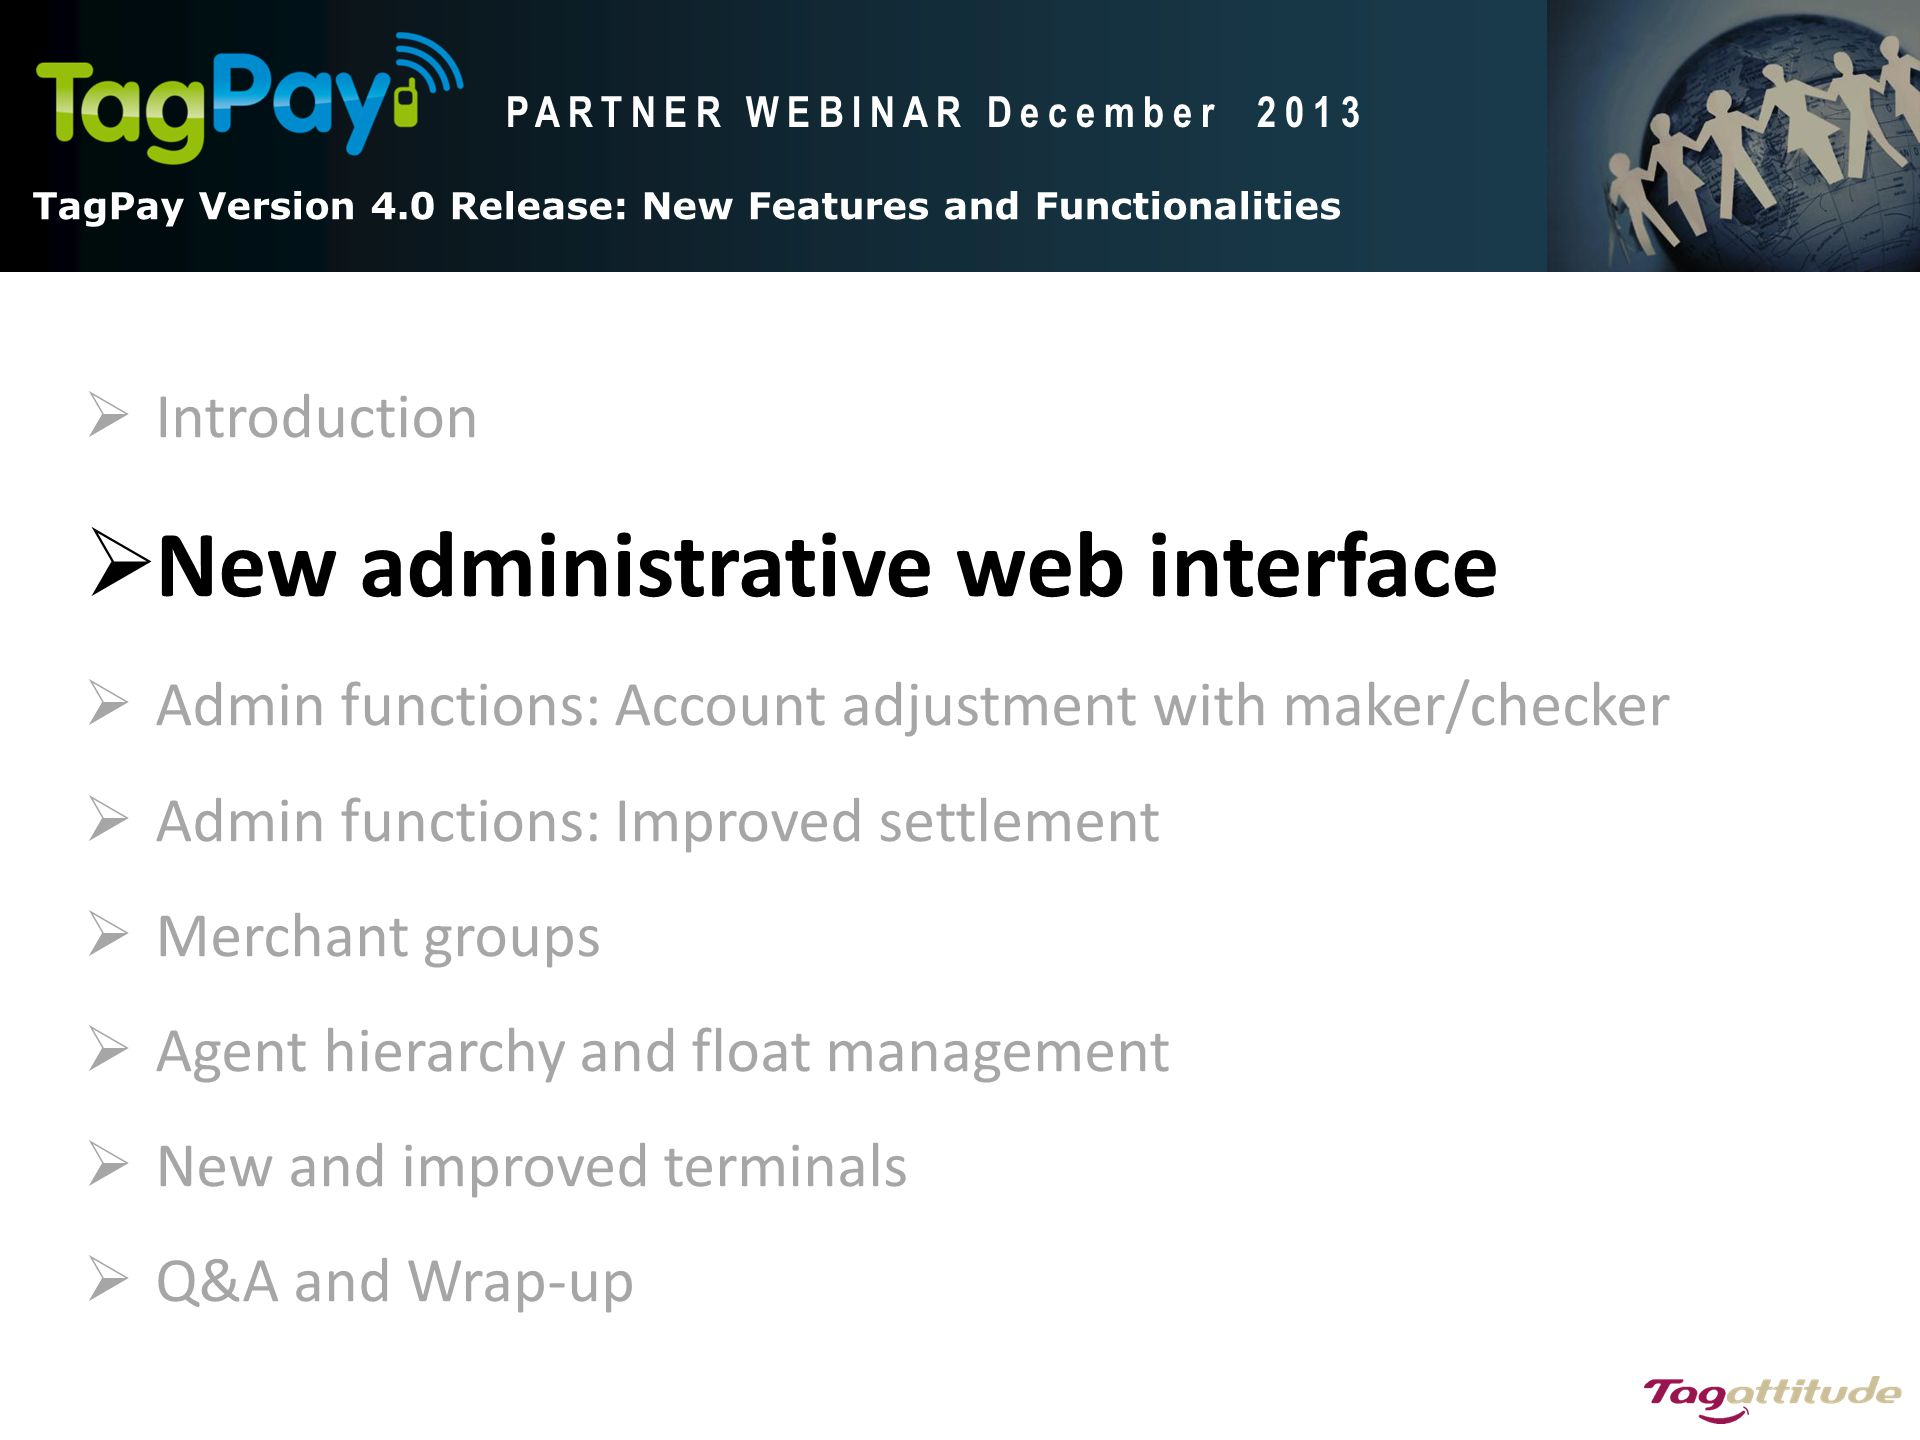 TagPay V4.0 Release: New Features and functionalities TagPay Version 4.0 Release: New Features and Functionalities PARTNER WEBINAR December 2013  Introduction  New administrative web interface  Admin functions: Account adjustment with maker/checker  Admin functions: Improved settlement  Merchant groups  Agent hierarchy and float management  New and improved terminals  Q&A and Wrap-up